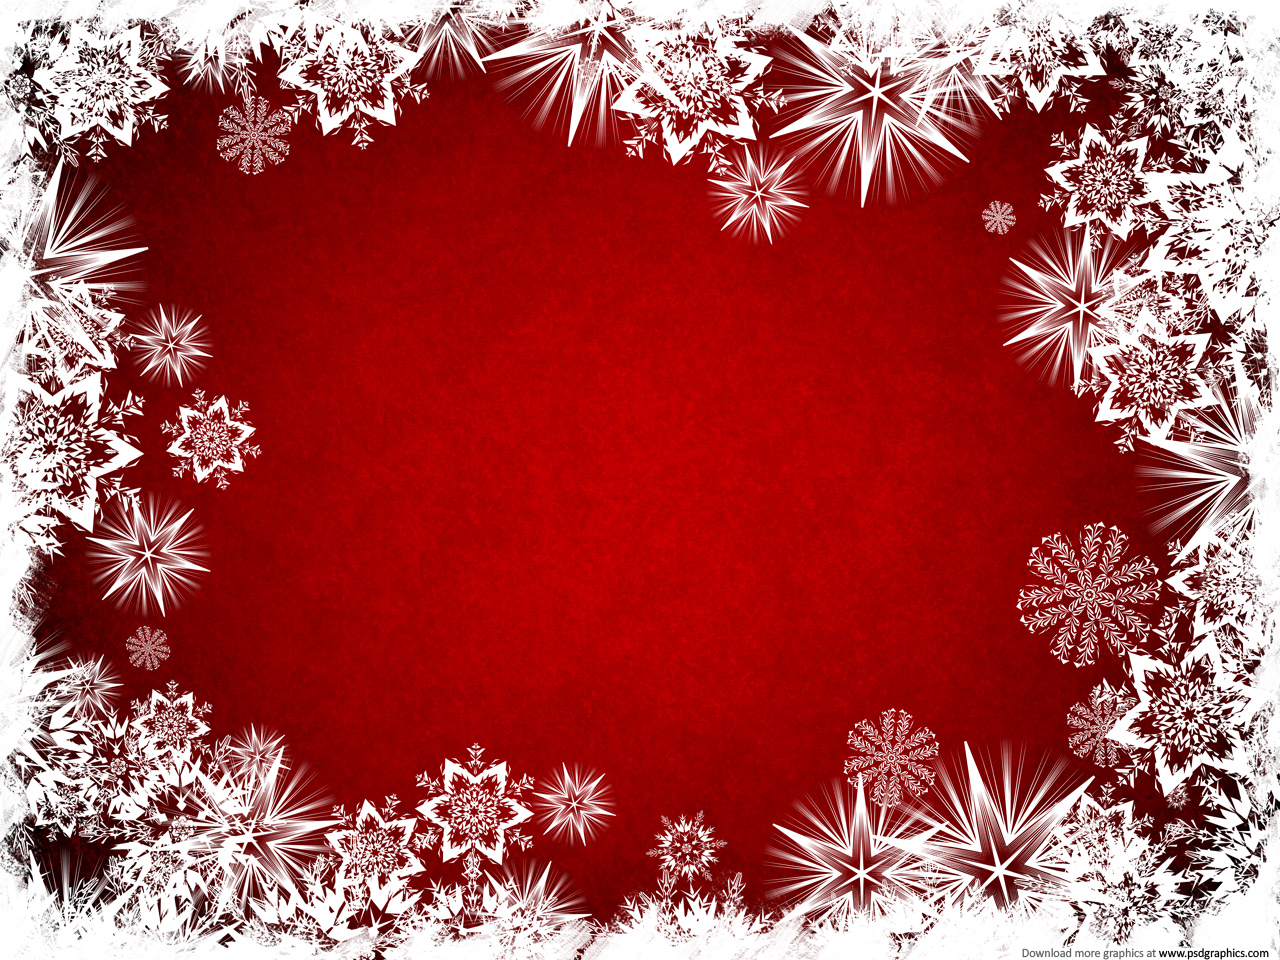 holiday backround - gse.bookbinder.co, Modern powerpoint